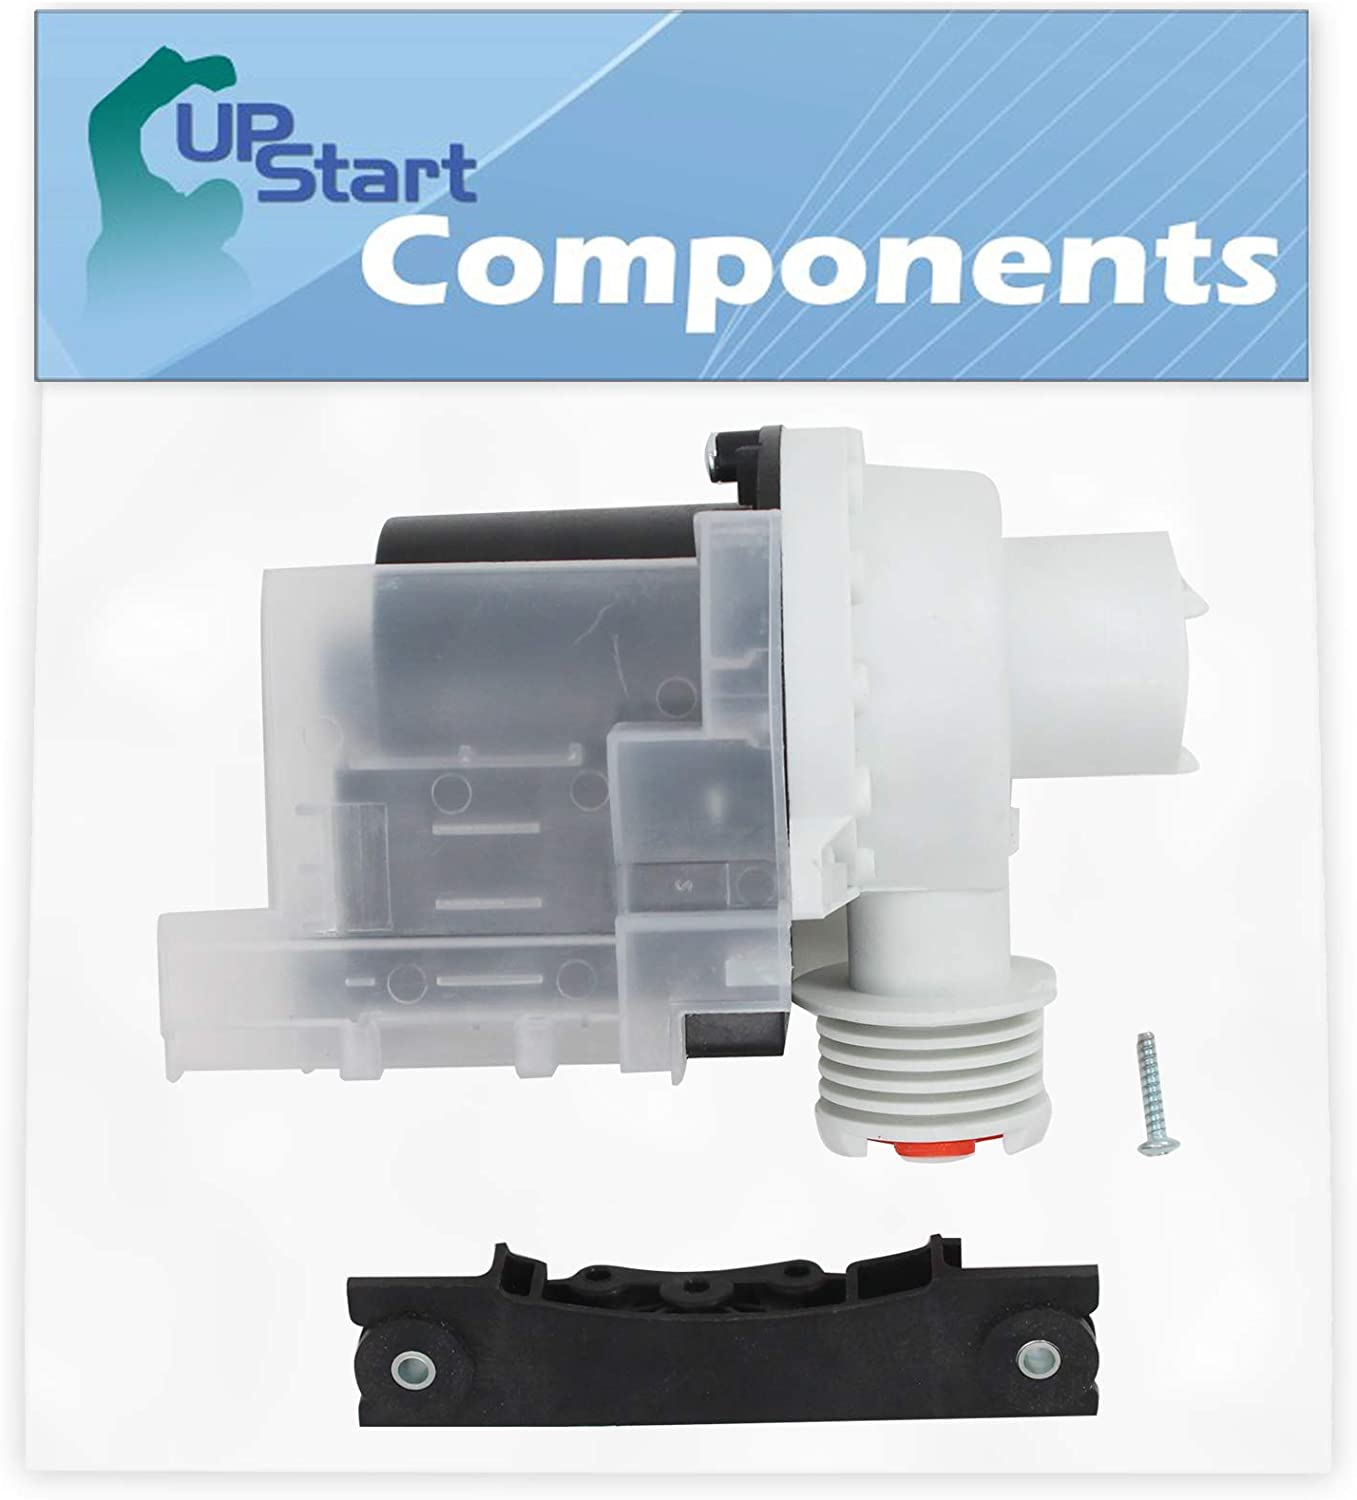 137221600 Washer Drain Pump Kit Replacement for Frigidaire ATF6700FS1 Washing Machine - Compatible with 137221600 Water Pump - UpStart Components Brand